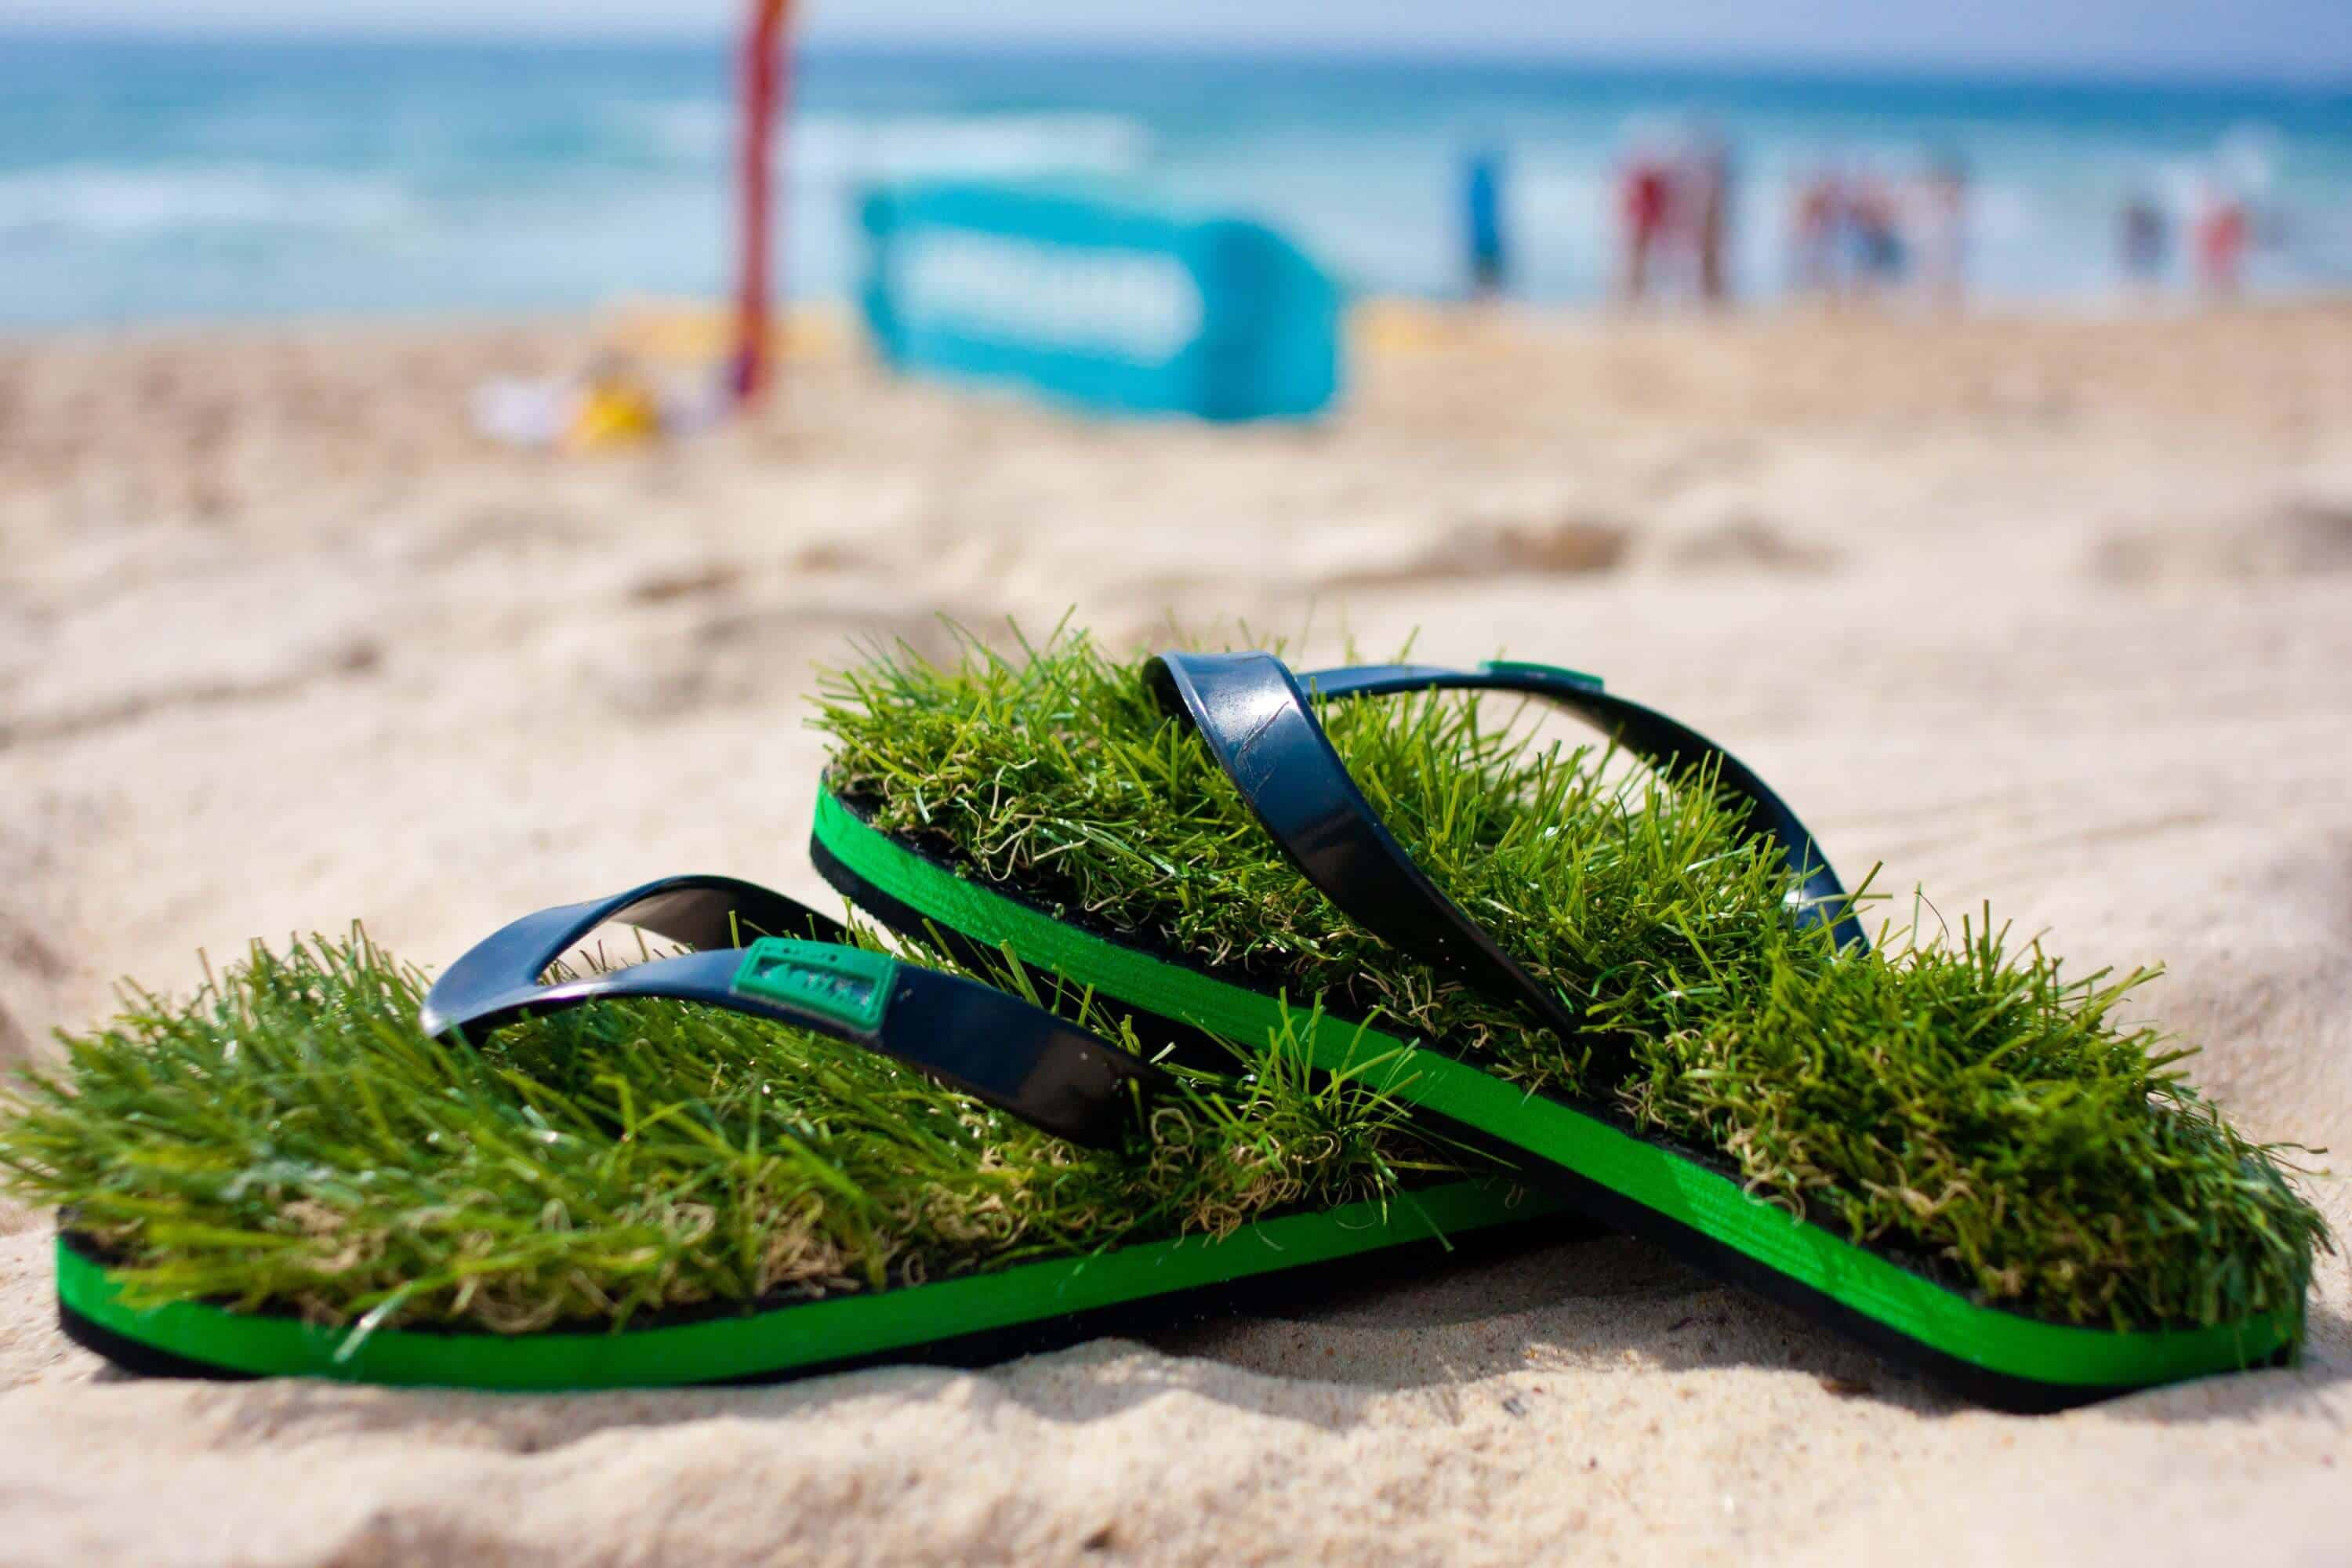 952892308b59 Kusa Grass Flip Flops - Things I Desire